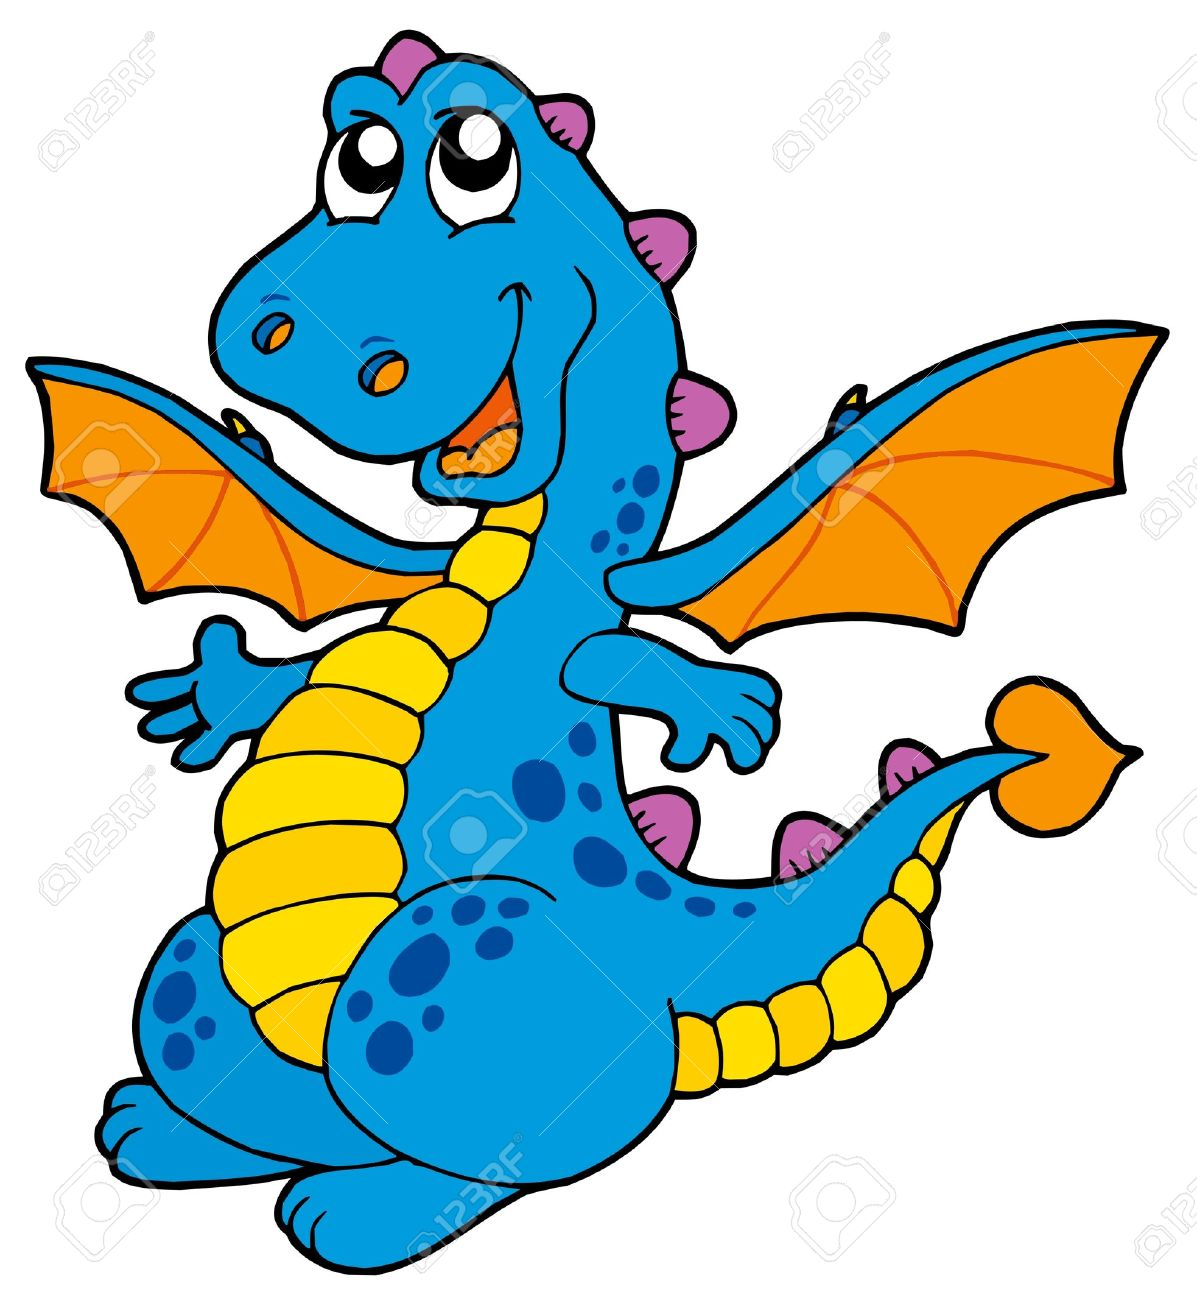 Cute blue dragon - vector illustration. Stock Vector - 5131836